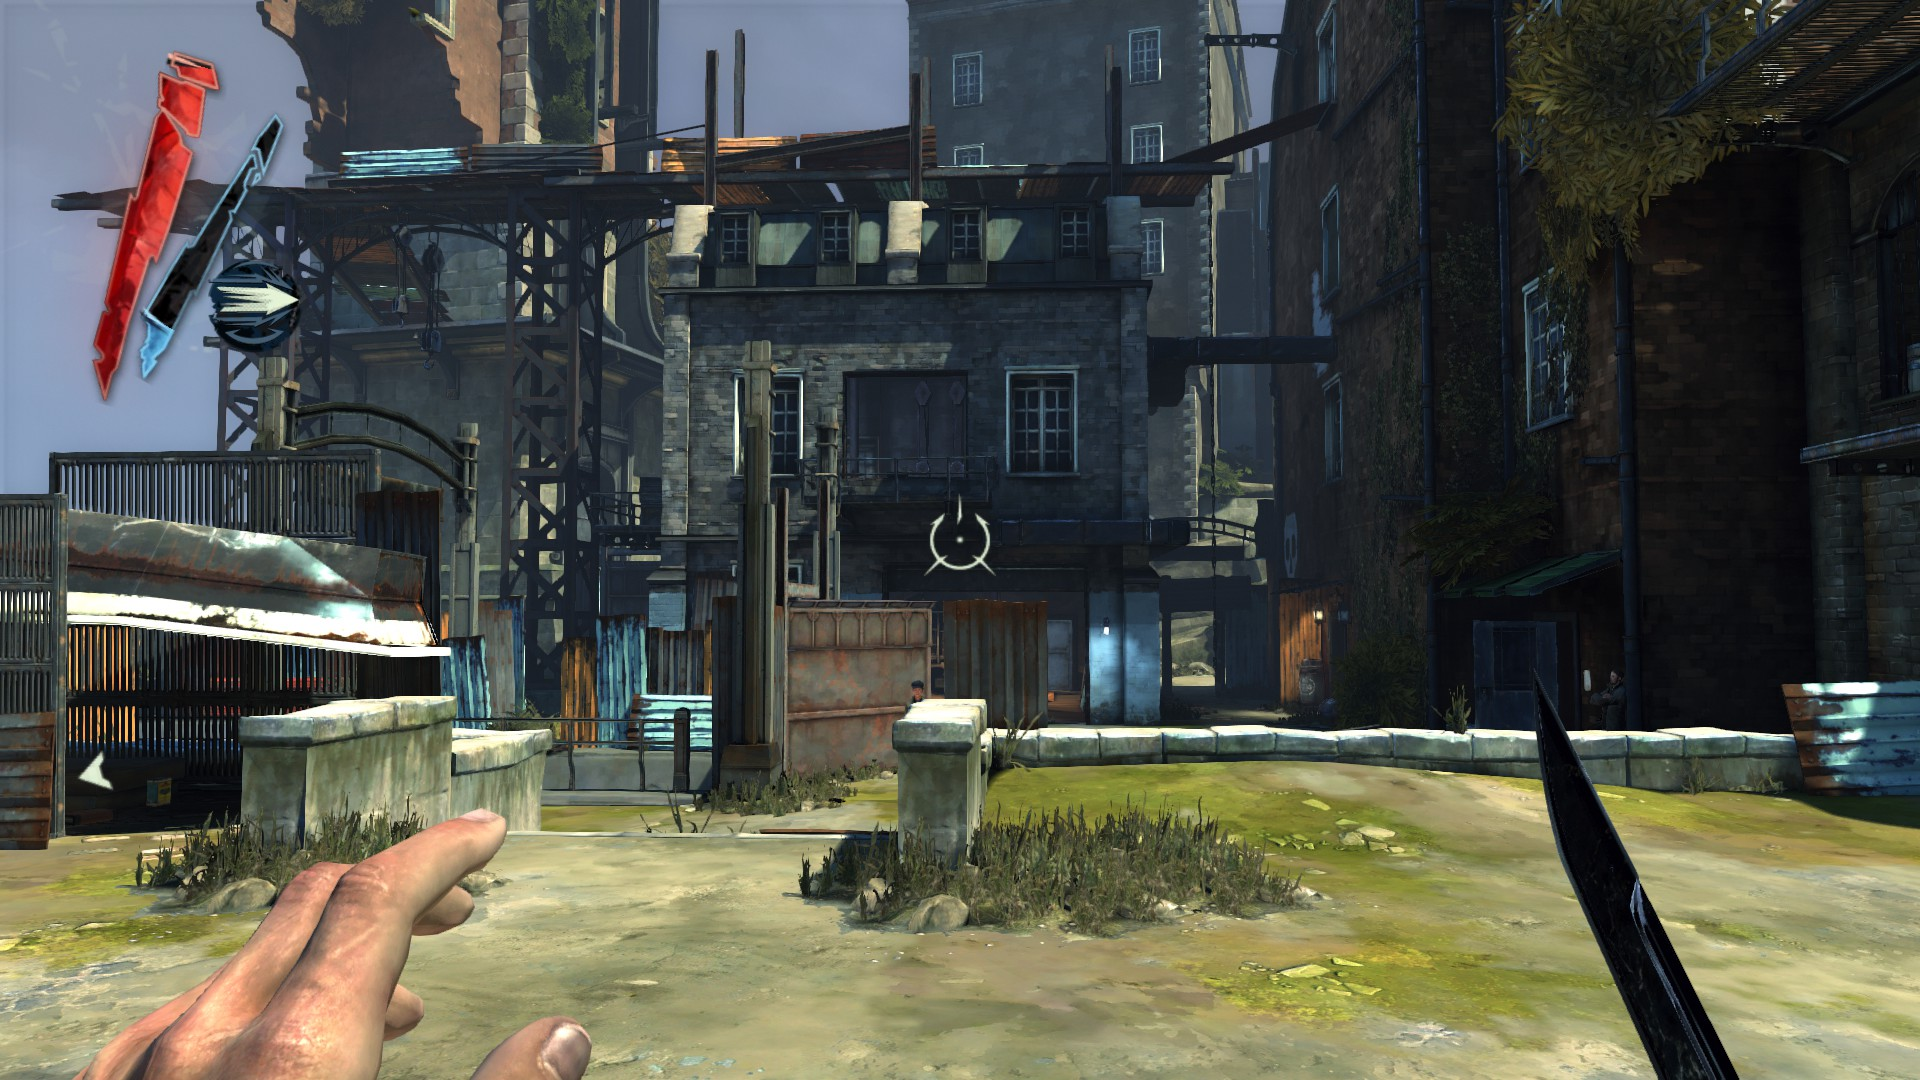 Review: Dishonored – Blink, Stab